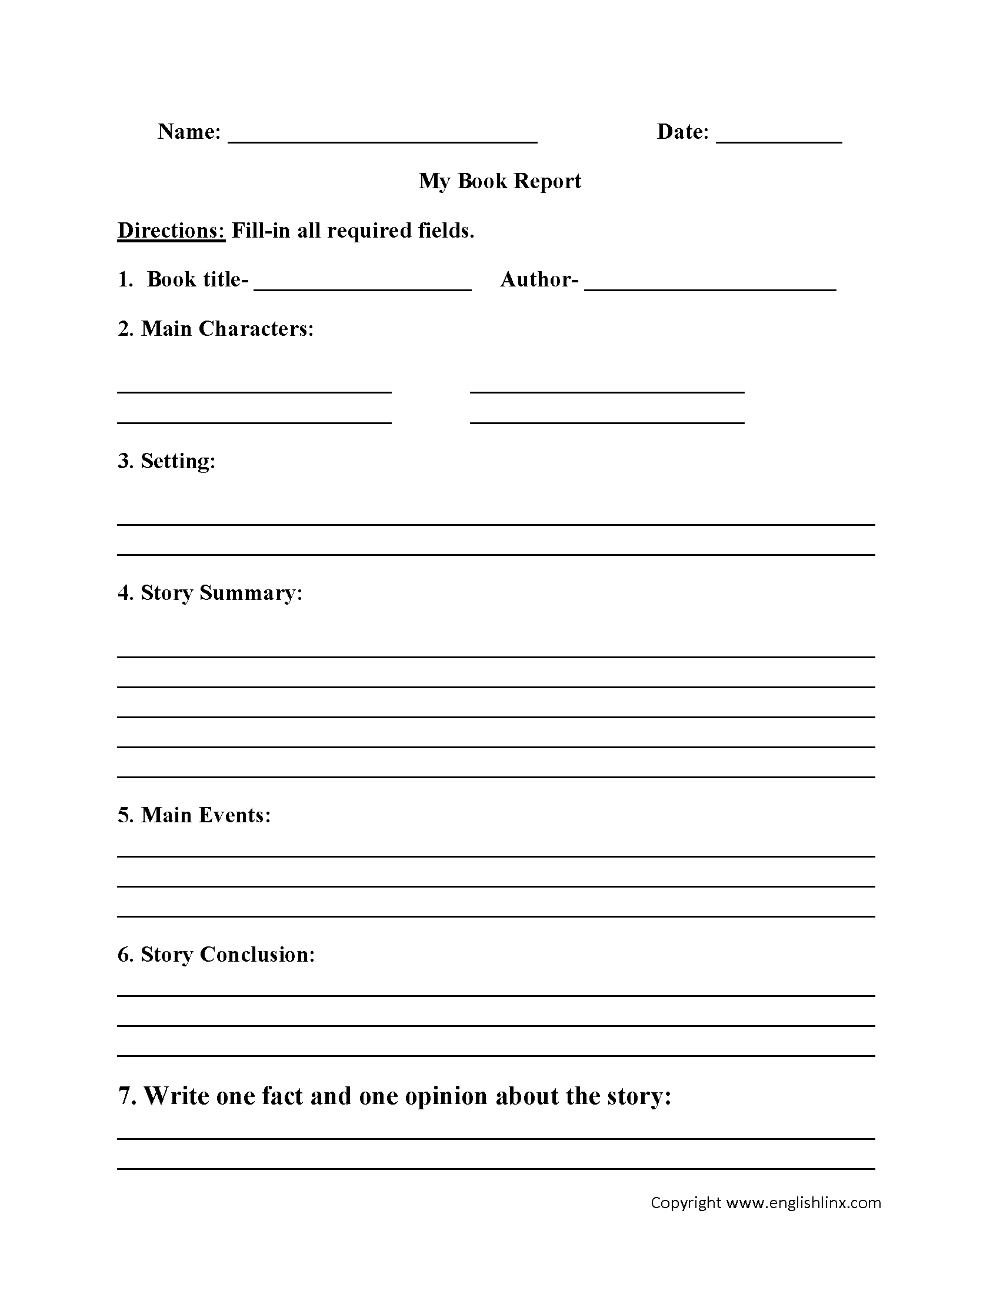 Englishlinx Book Report Worksheets Throughout Book Report Template 6Th Grade  - 10+ Professiona…   Book report templates [ 1294 x 1000 Pixel ]